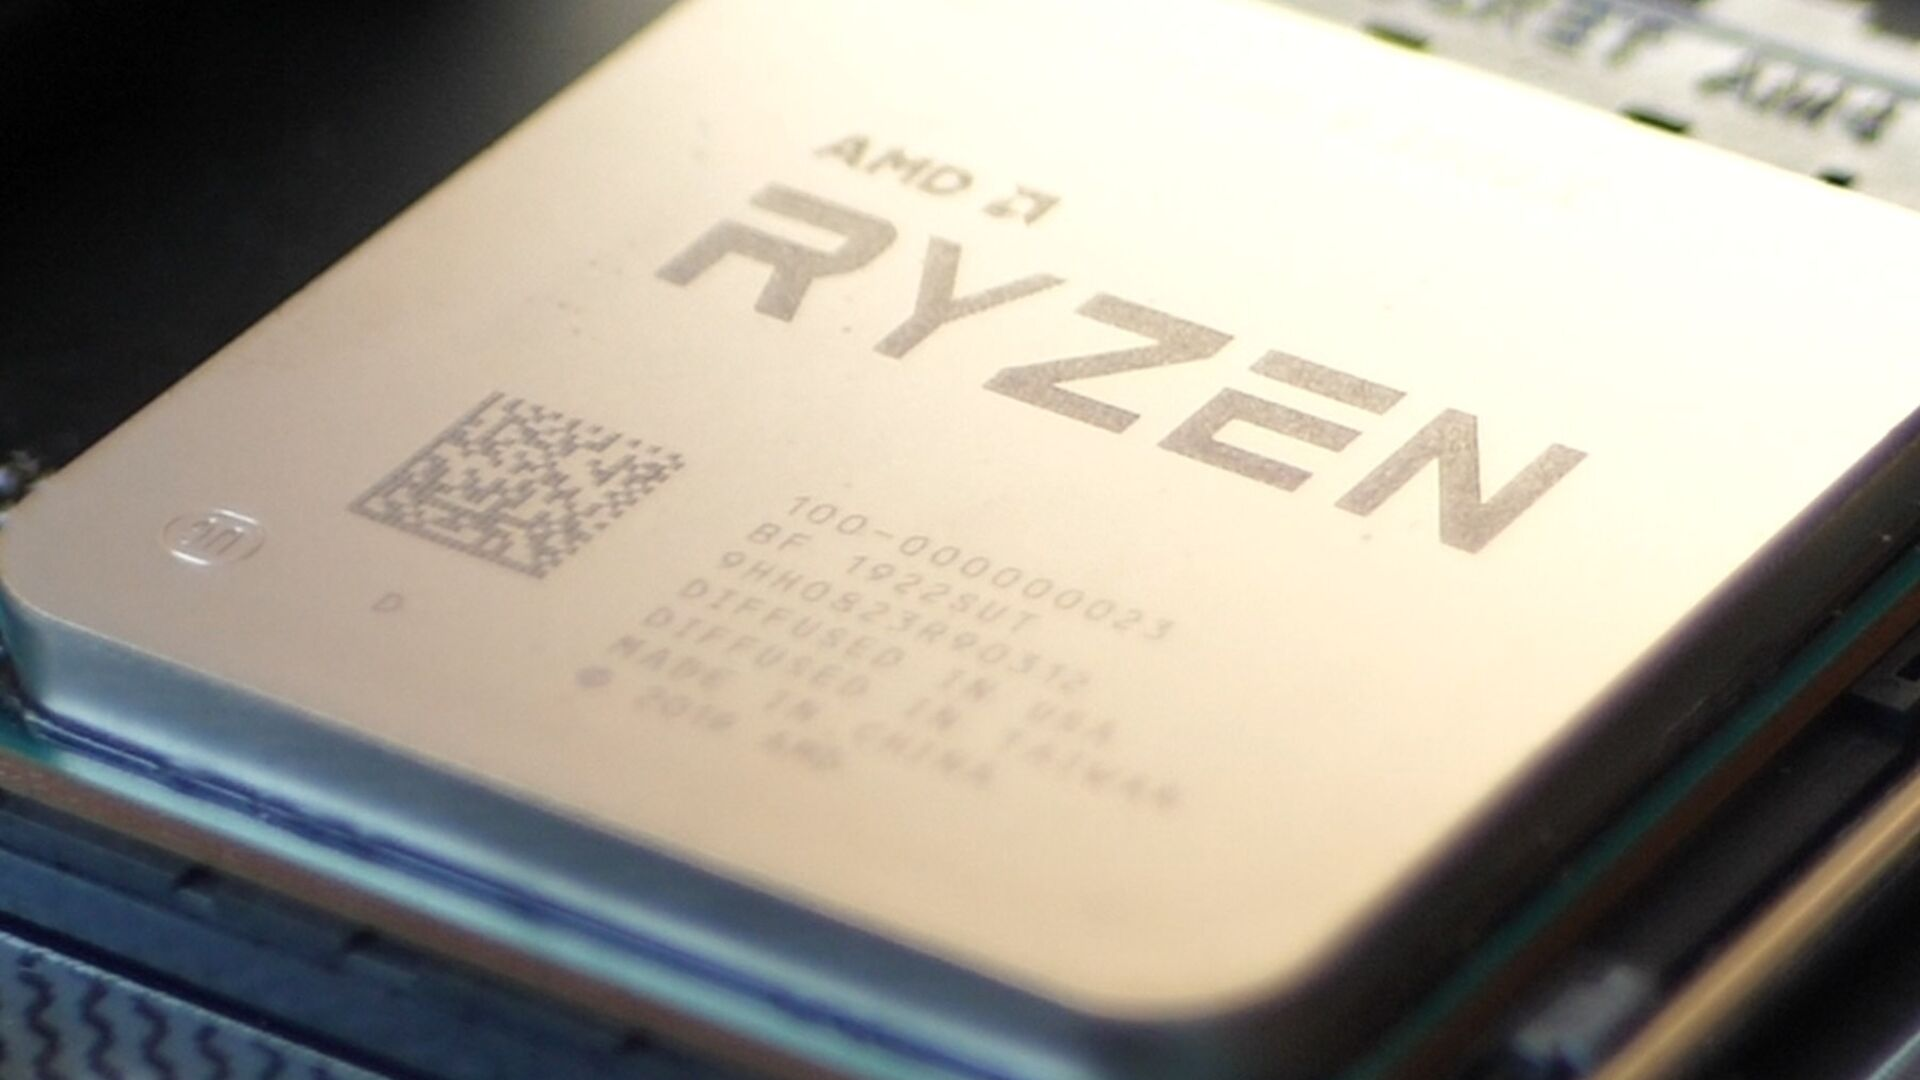 AMD Ryzen 9 3900X vs Core i9 9900K review